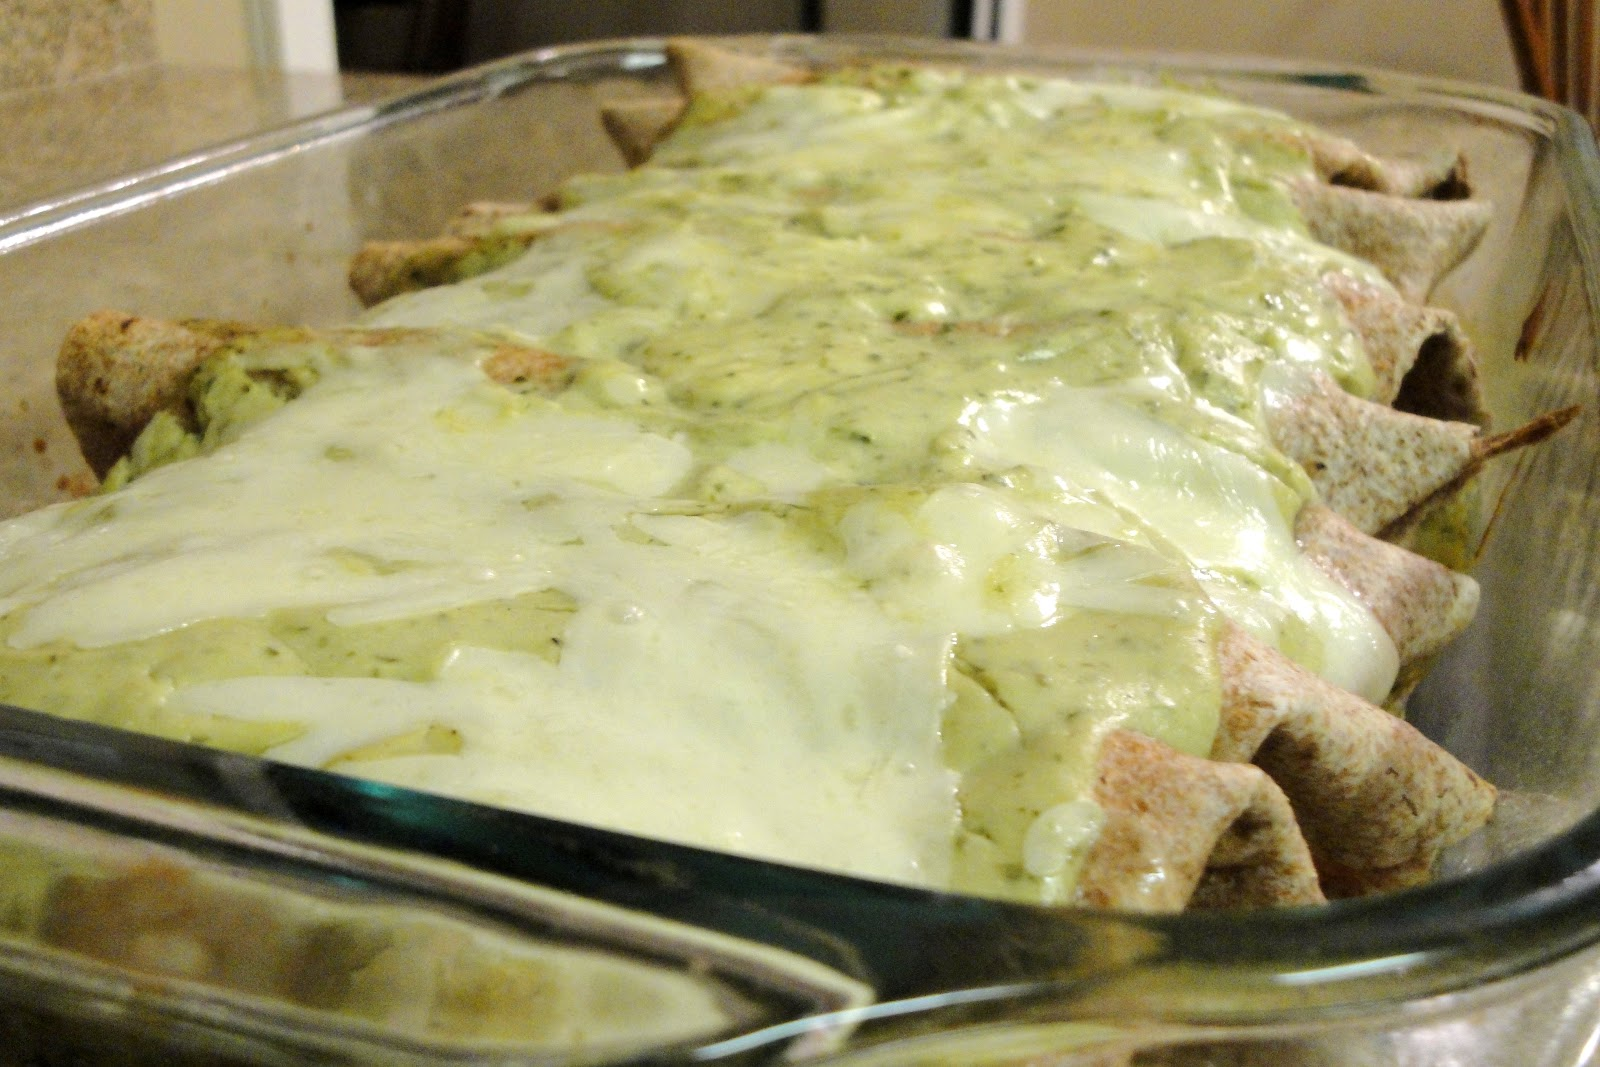 Chicken and Avocado Enchiladas - The Cookin' Chemist